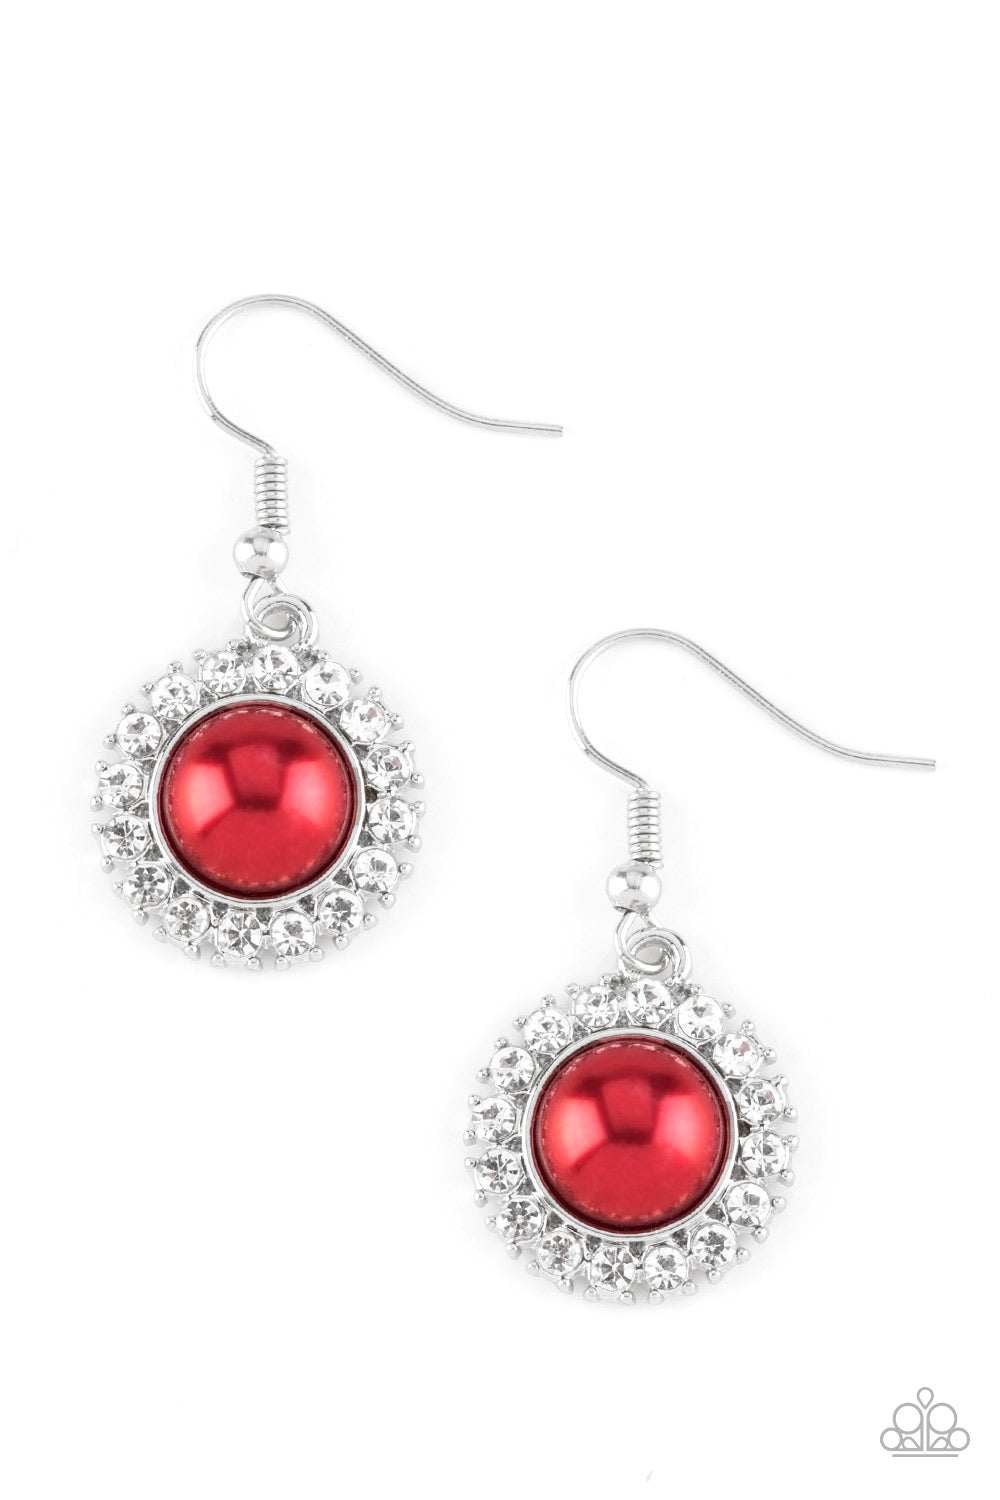 Paparazzi Fashion Show Celebrity Red Fishhook Earrings